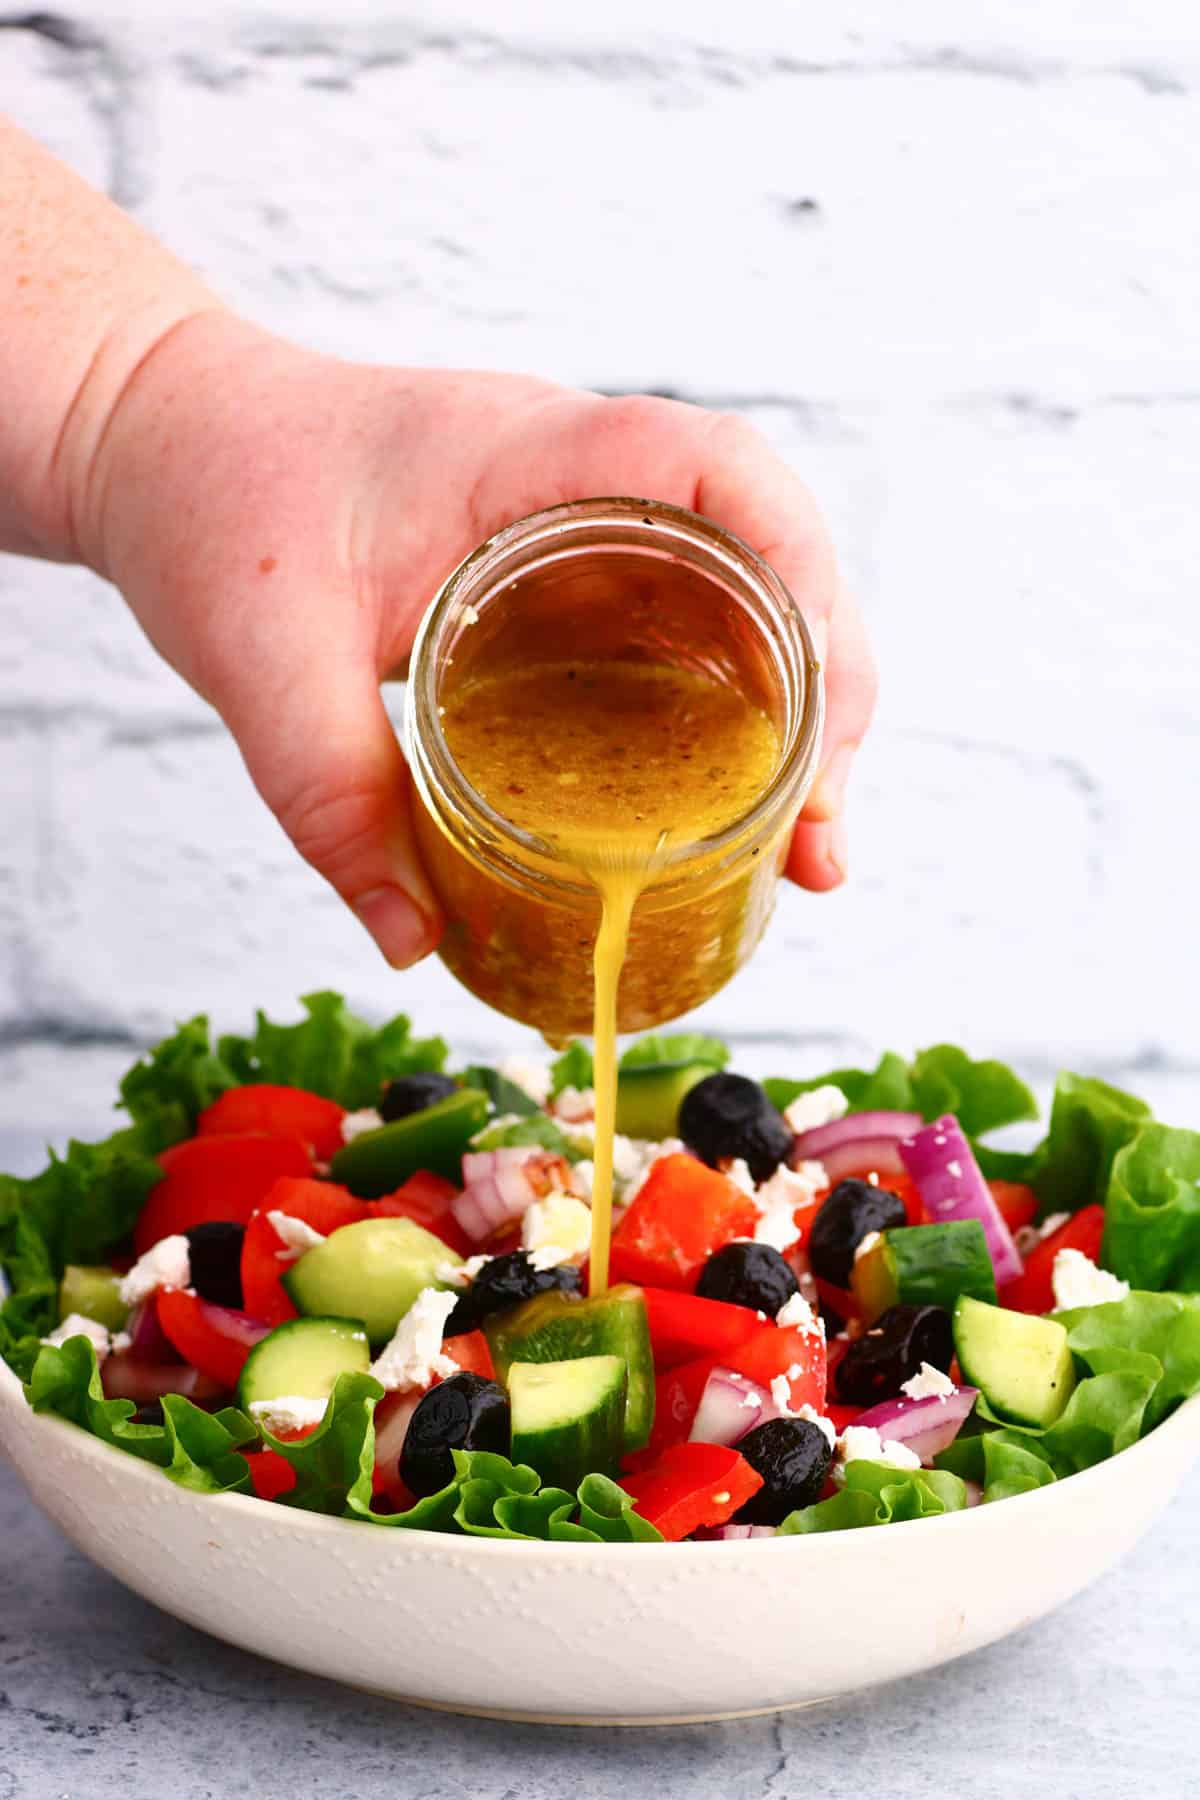 Salad dressing being poured on a bright chopped salad.